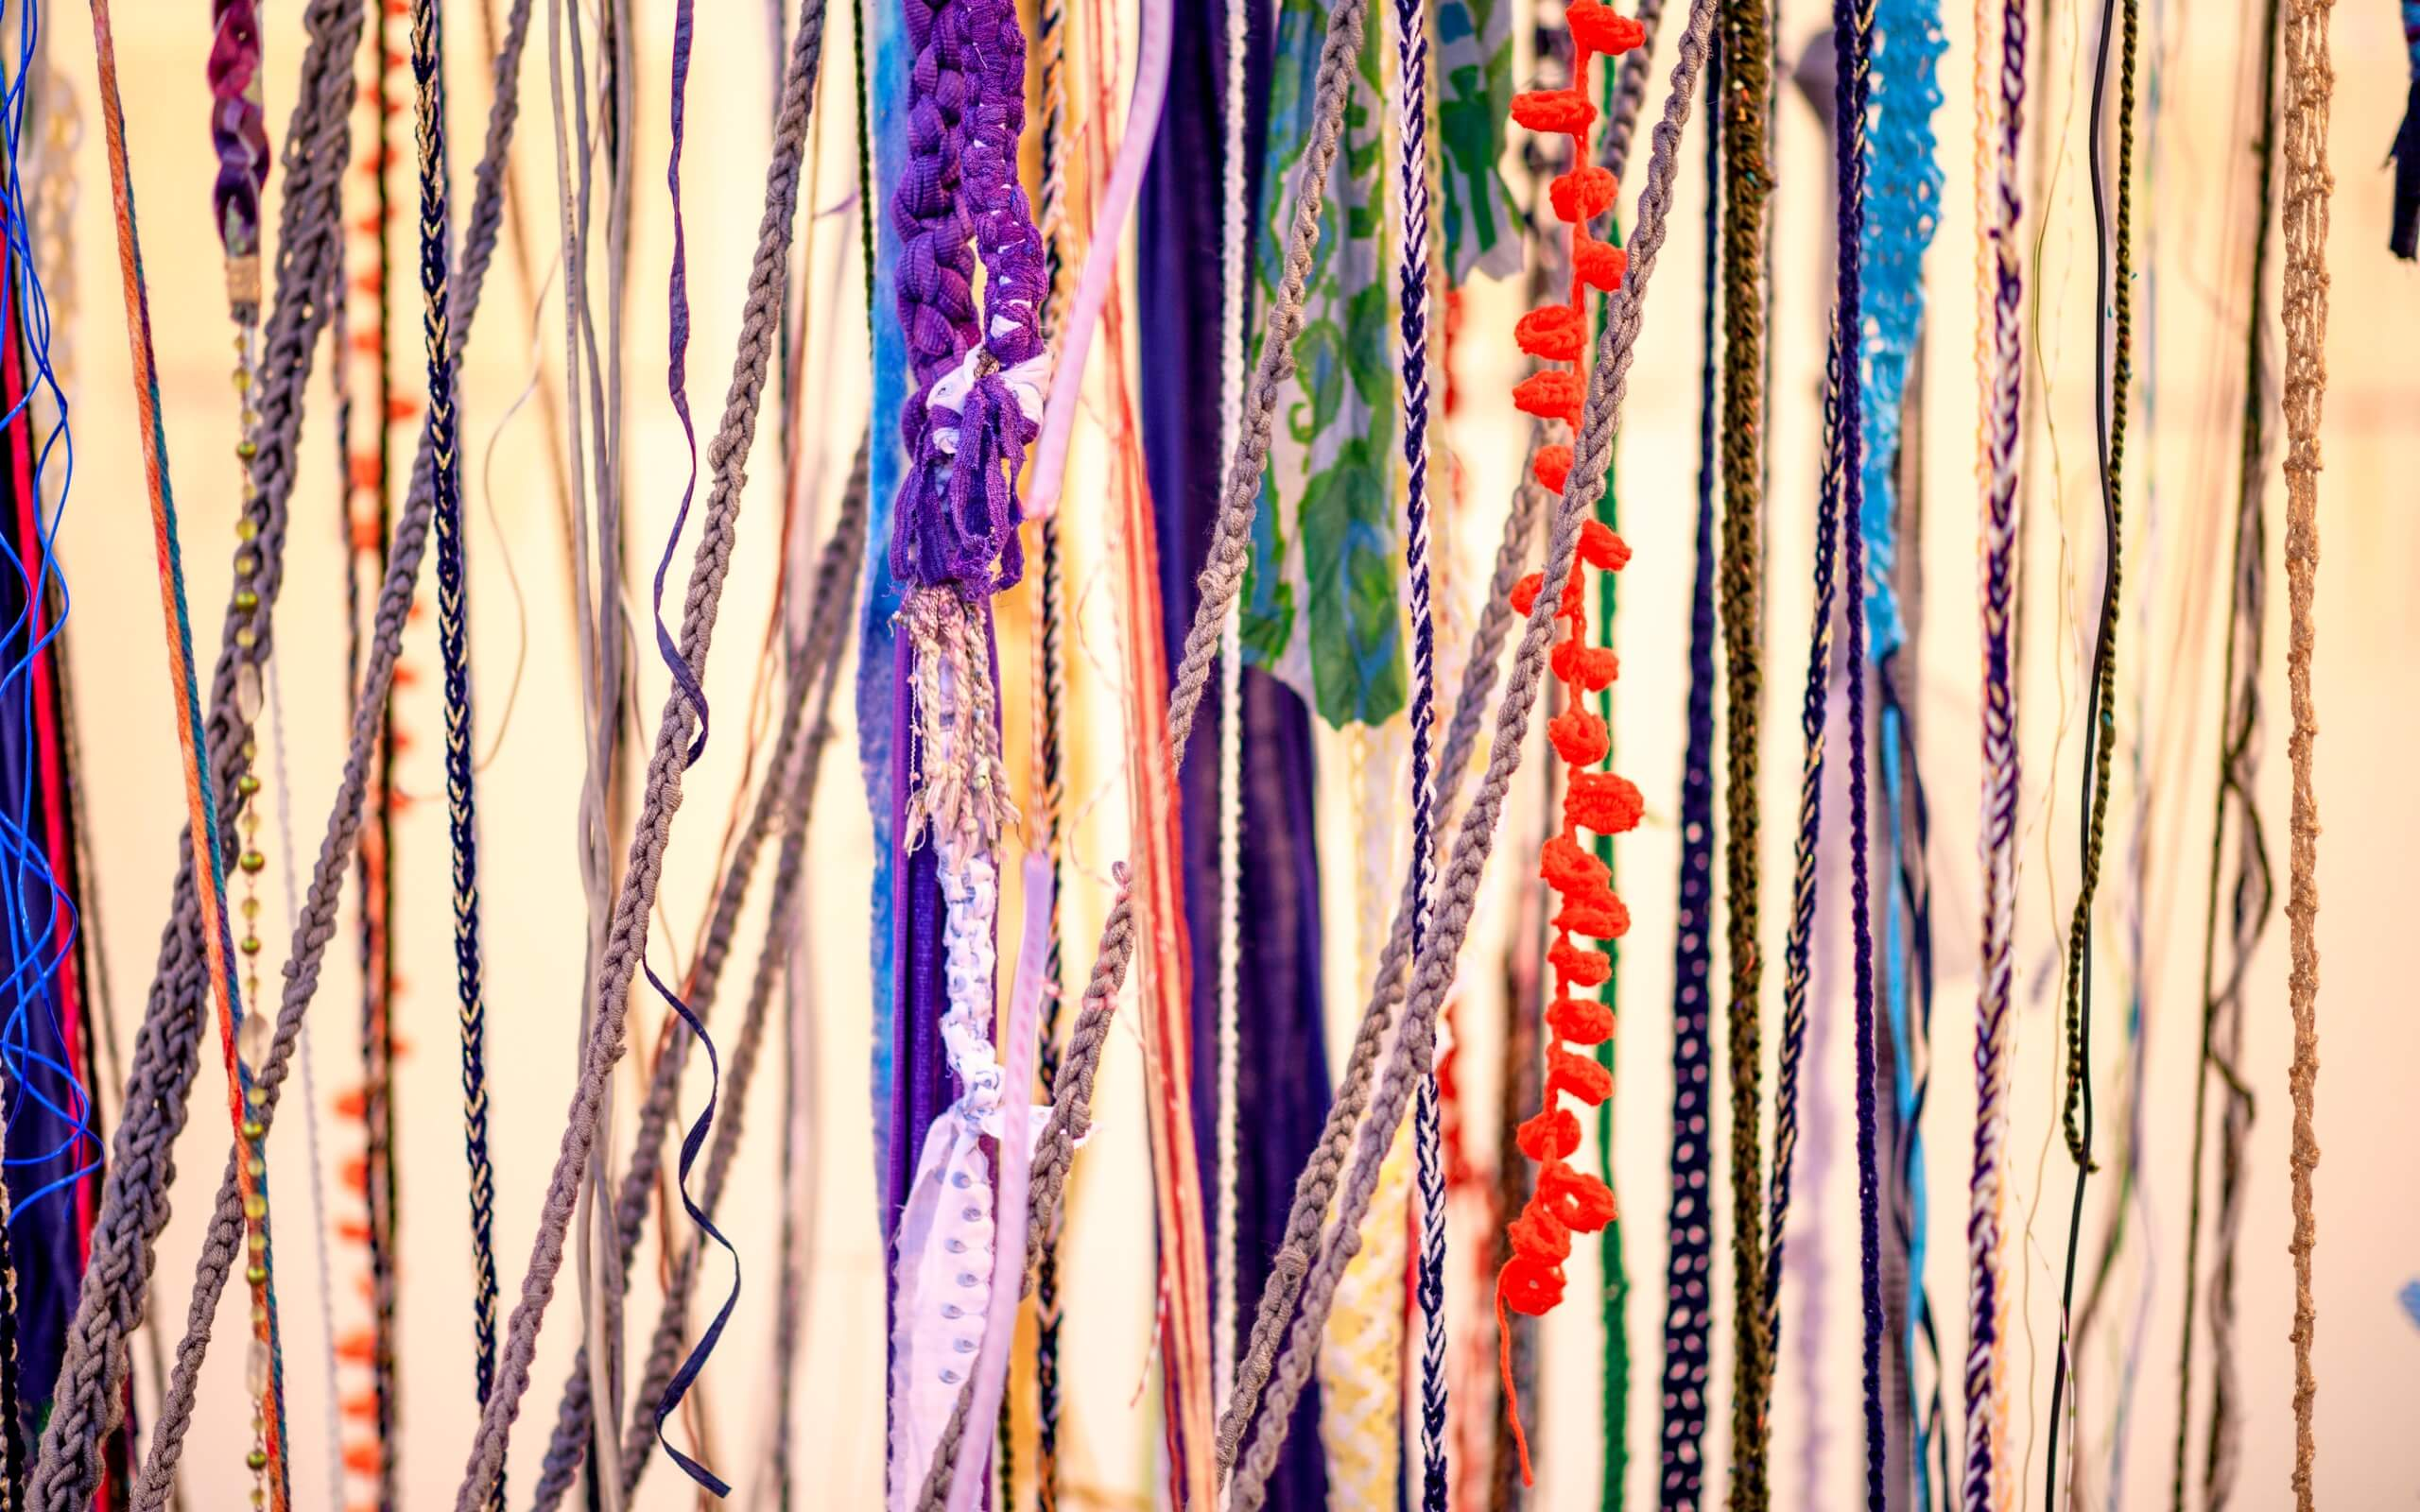 A close up photo of brightly coloured strands of material of different thicknesses